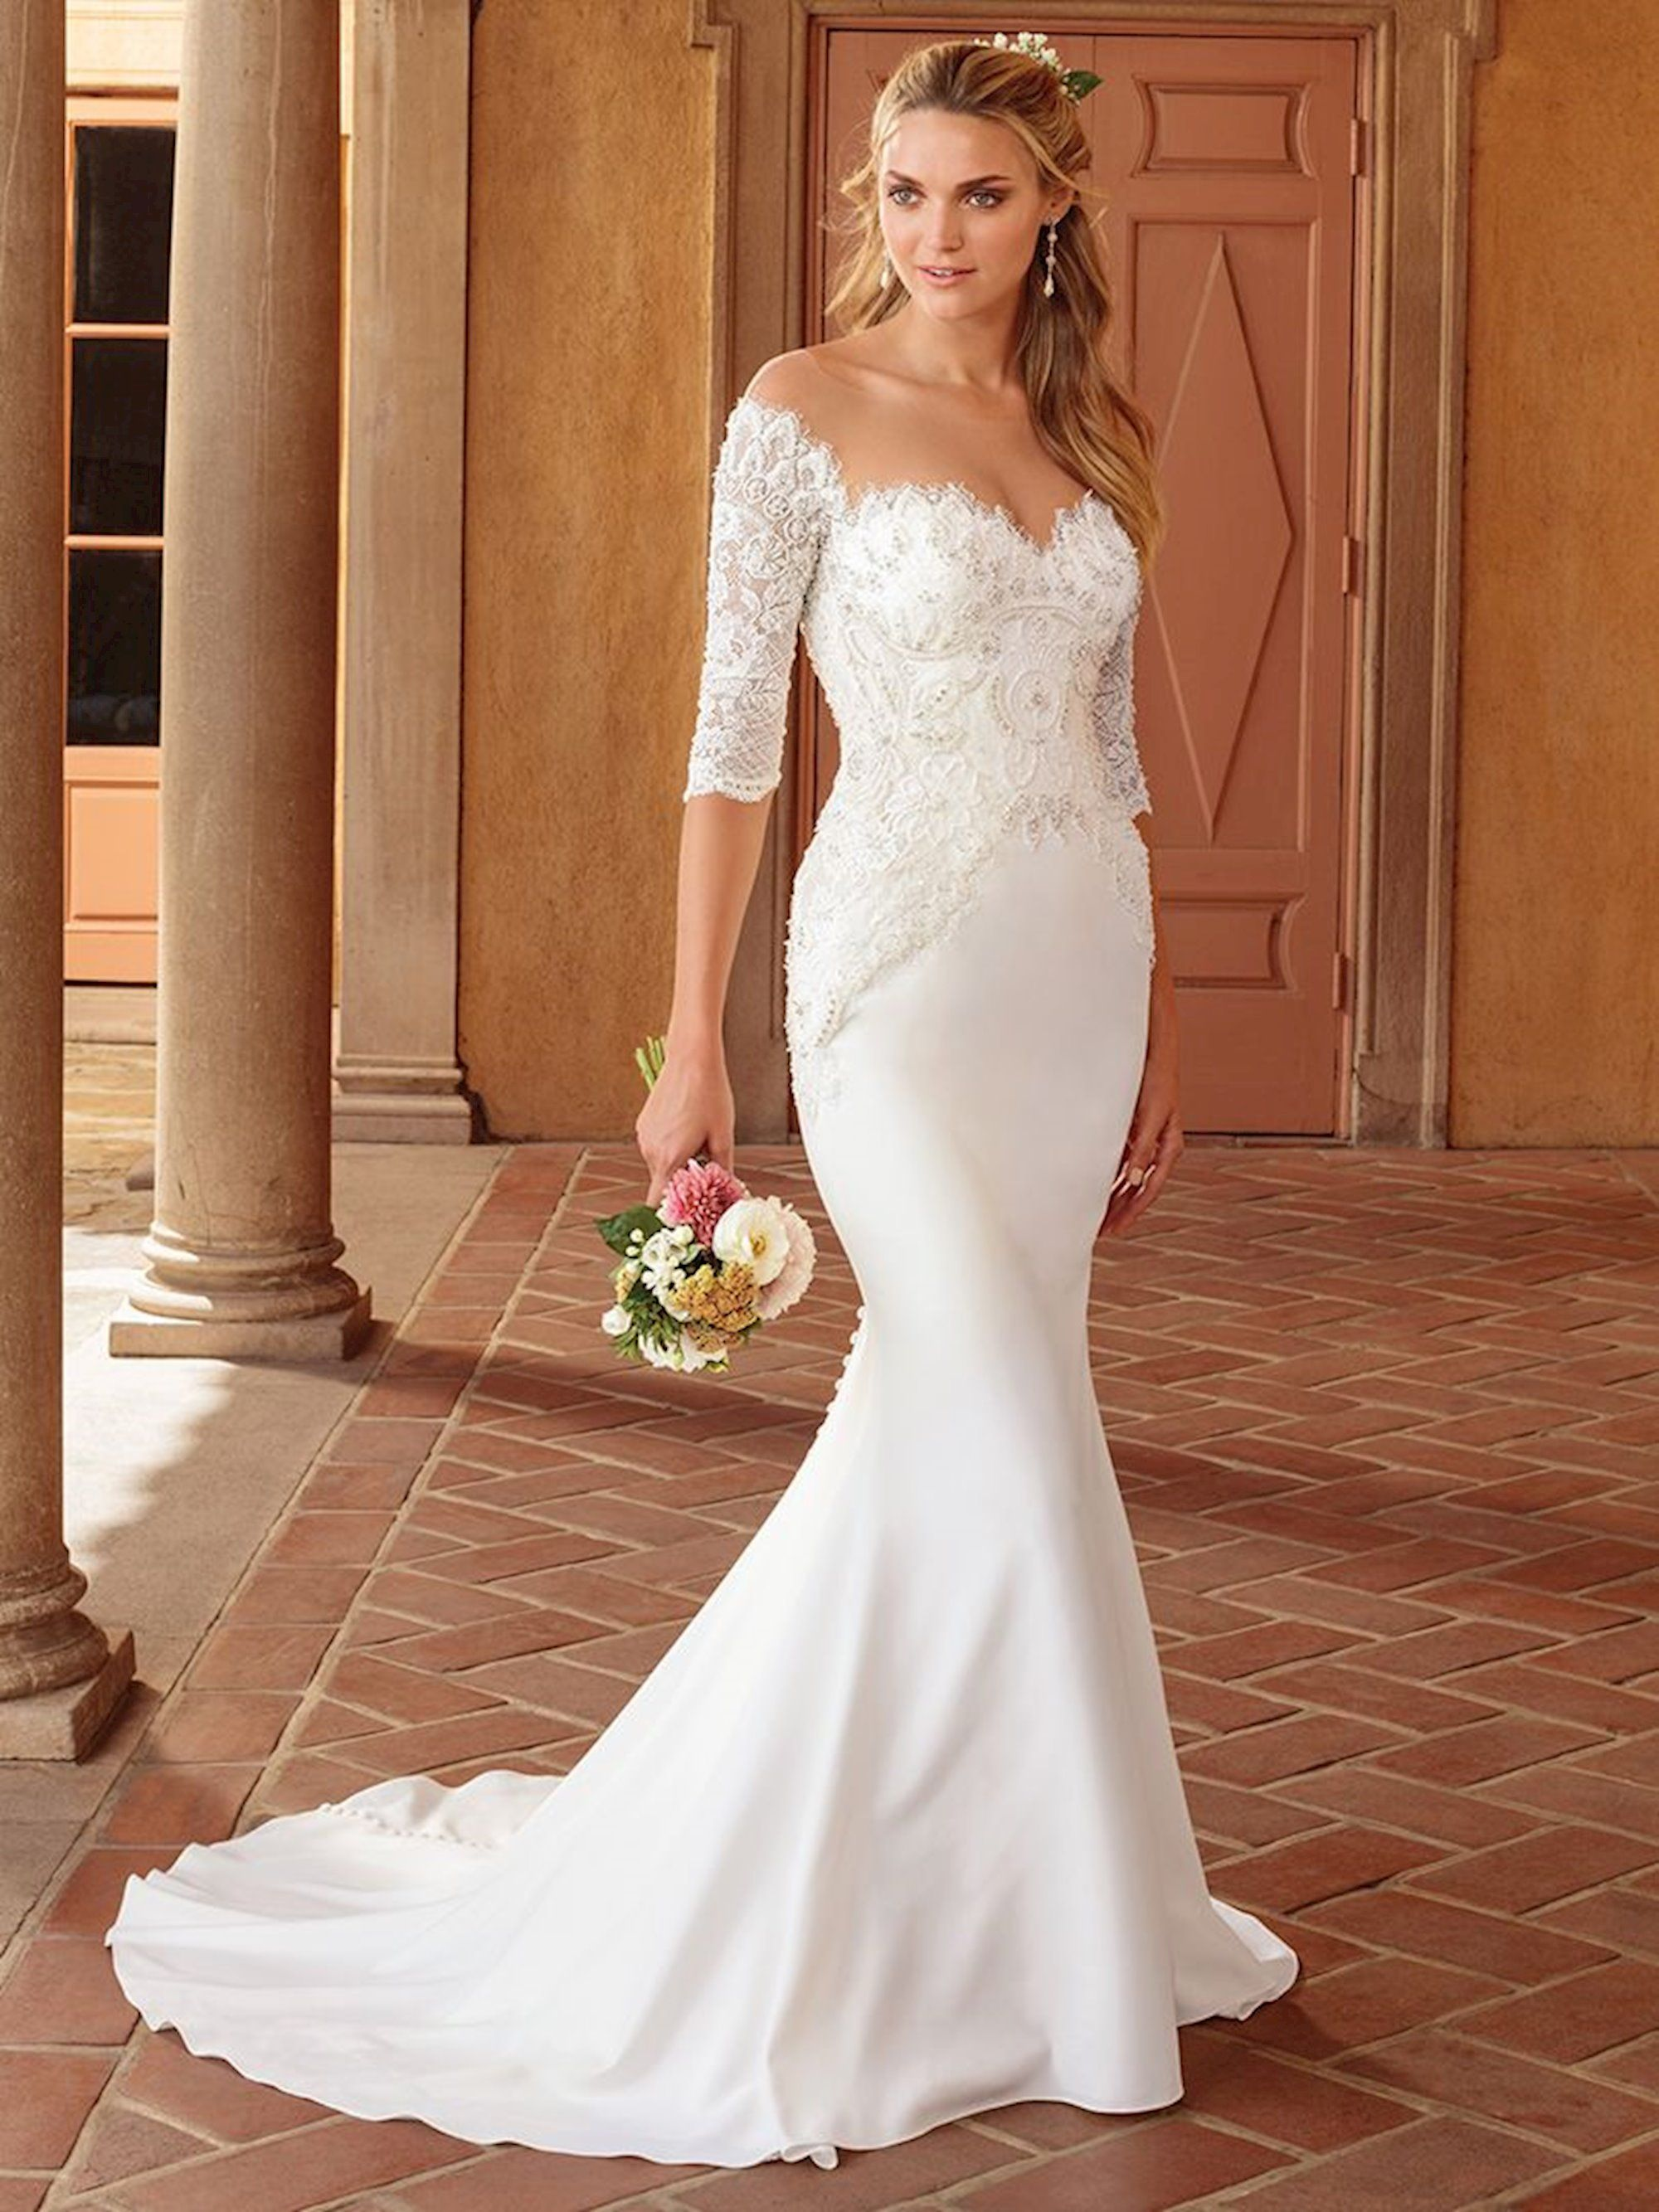 This glam fit and flare wedding dress by Casablanca Bridal